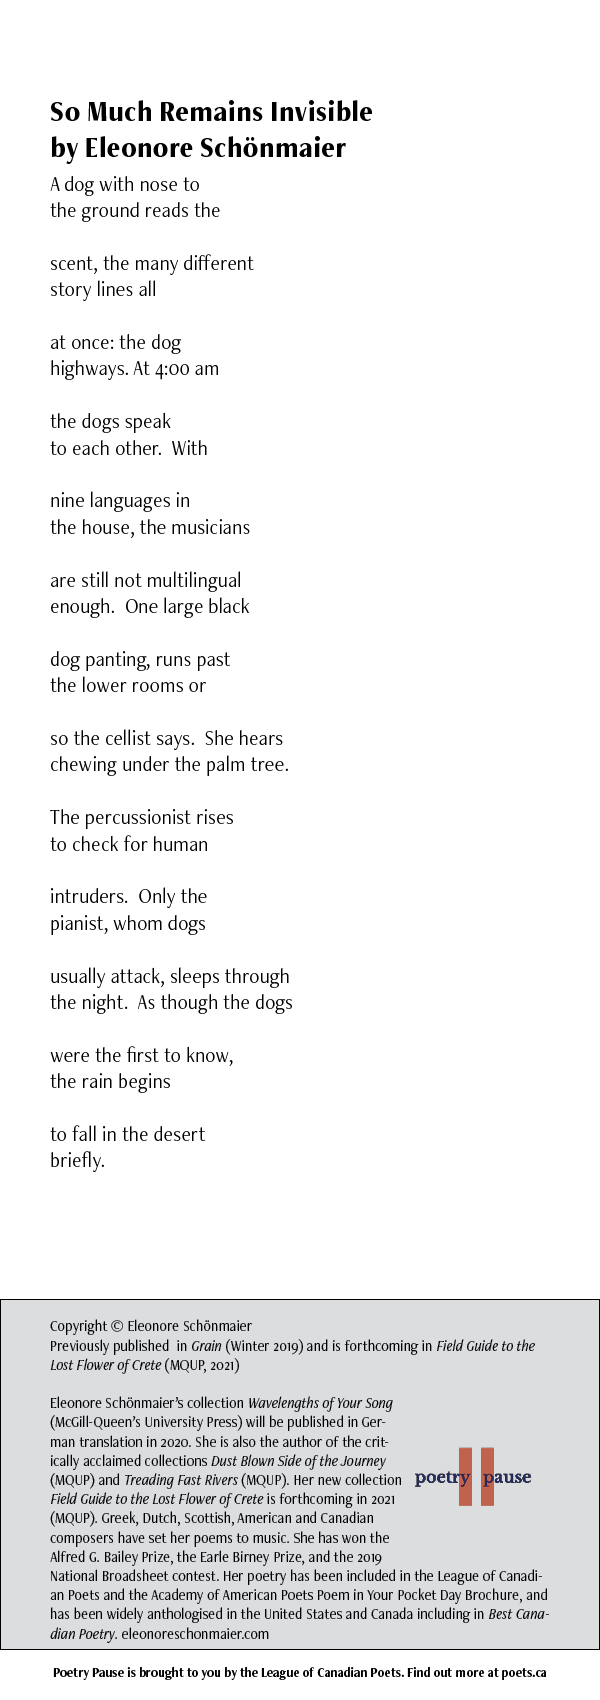 POEM NAME: So Much Remains Invisible AUTHOR NAME: Eleonore Schonmaier POEM: A dog with nose to the ground reads the scent, the many different story lines all at once: the dog highways. At 4:00 am the dogs speak to each other. With nine languages in the house, the musicians are still not multilingual enough. One large black dog panting, runs past the lower rooms or so the cellist says. She hears chewing under the palm tree. The percussionist rises to check for human intruders. Only the pianist, whom dogs usually attack, sleeps through the night. As though the dogs were the first to know, the rain begins to fall in the desert briefly. END OF POEM. CREDITS: Copyright © Eleonore Schönmaier Previously published in Grain (Winter 2019) and is forthcoming in Field Guide to the Lost Flower of Crete (MQUP, 2021) Eleonore Schönmaier's collection Wavelengths of Your Song (McGill-Queen's University Press) will be published in German translation in 2020. She is also the author of the critically acclaimed collections Dust Blown Side of the Journey (MQUP) and Treading Fast Rivers (MQUP). Her new collection Field Guide to the Lost Flower of Crete is forthcoming in 2021 (MQUP). Greek, Dutch, Scottish, American and Canadian composers have set her poems to music. She has won the Alfred G. Bailey Prize, the Earle Birney Prize, and the 2019 National Broadsheet contest. Her poetry has been included in the League of Canadian Poets and the Academy of American Poets Poem in Your Pocket Day Brochure, and has been widely anthologised in the United States and Canada including in Best Canadian Poetry. eleonoreschonmaier.com